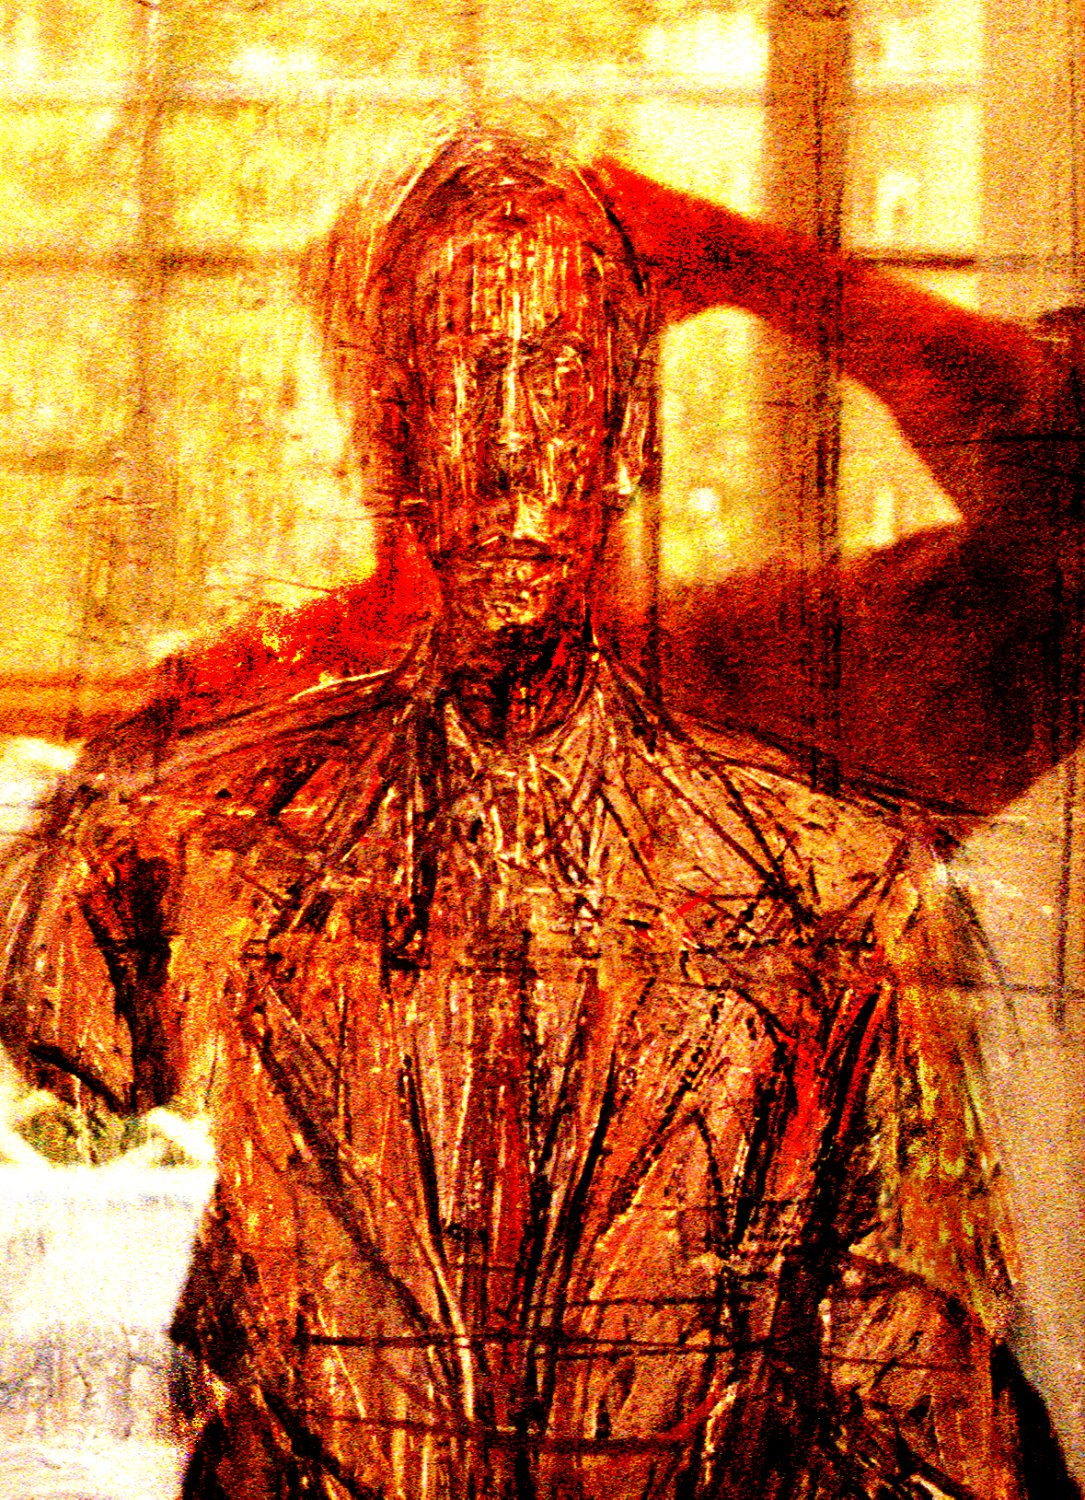 self portrait of Giacometti with Tony reflected in the glass in front of it - Merging with Giacometti - Techno-Impressionist Museum - Techno-Impressionism - art - beautiful - photo photography picture - by Tony Karp